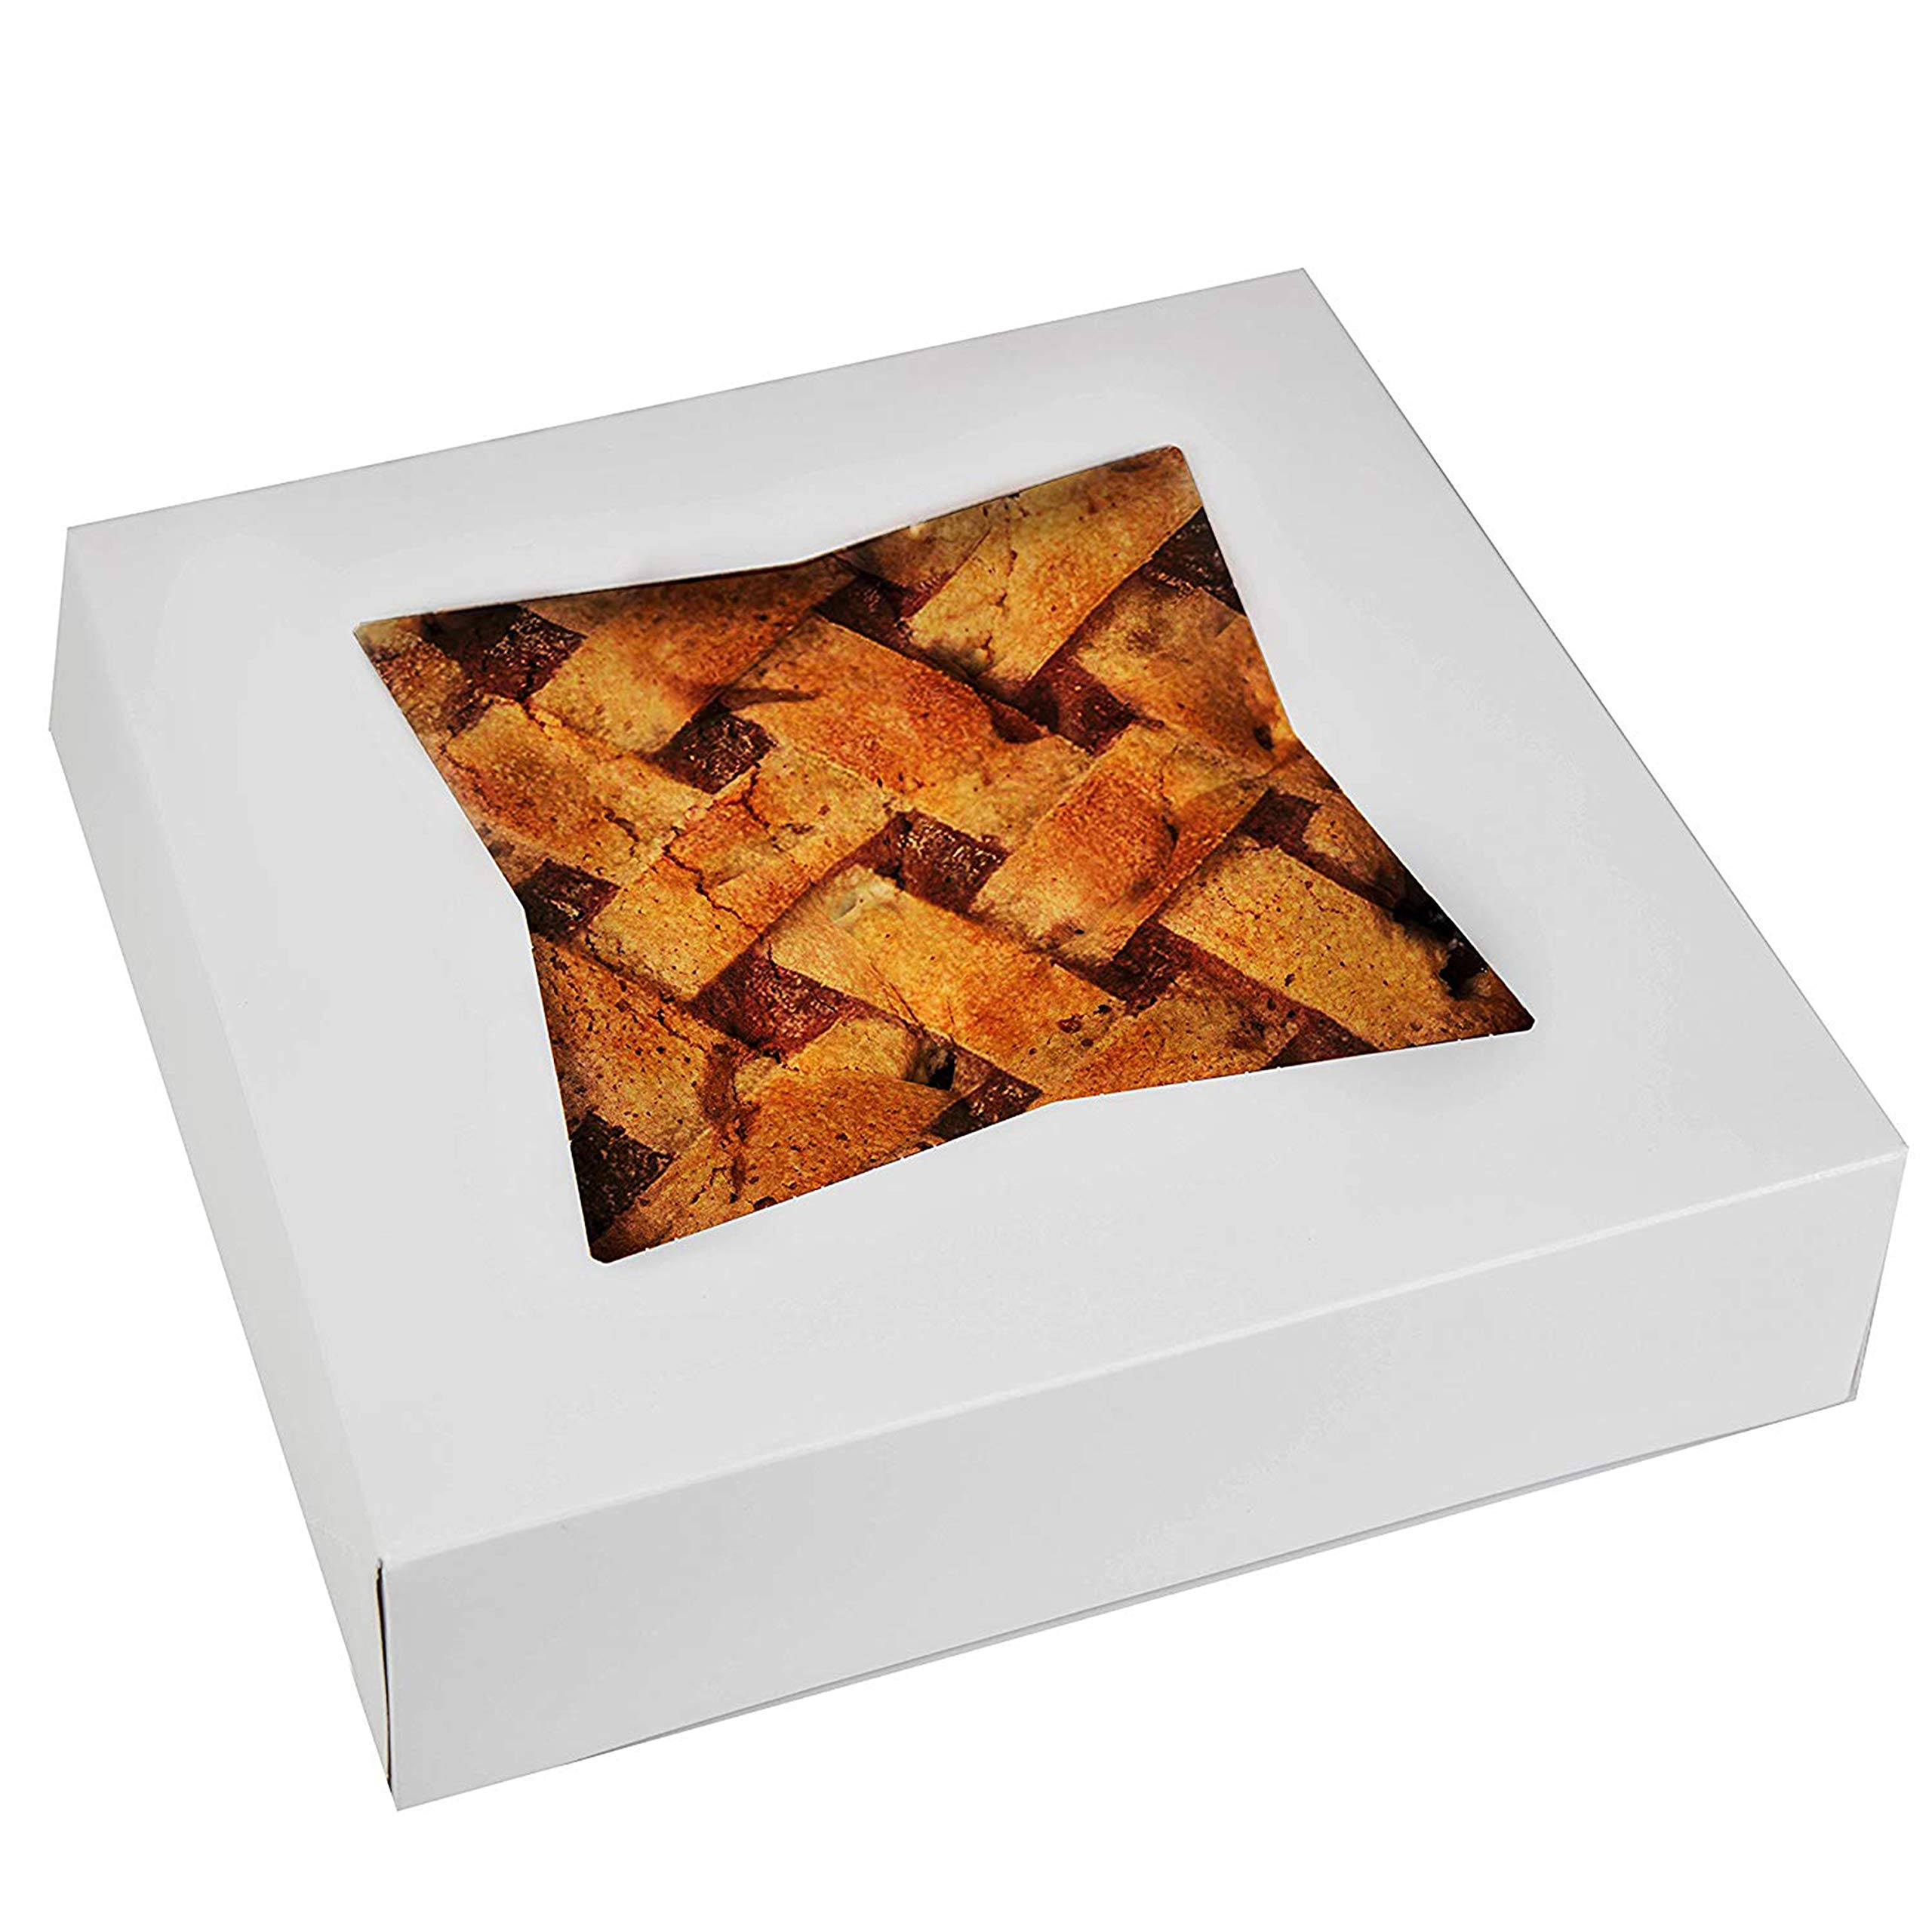 Cake Boxes - Set of 15 Pie Window Boxes 10 Inches by 10 Inches by 2 1/2 Inches White Paperboard Bakery Box by Upper Midland Products